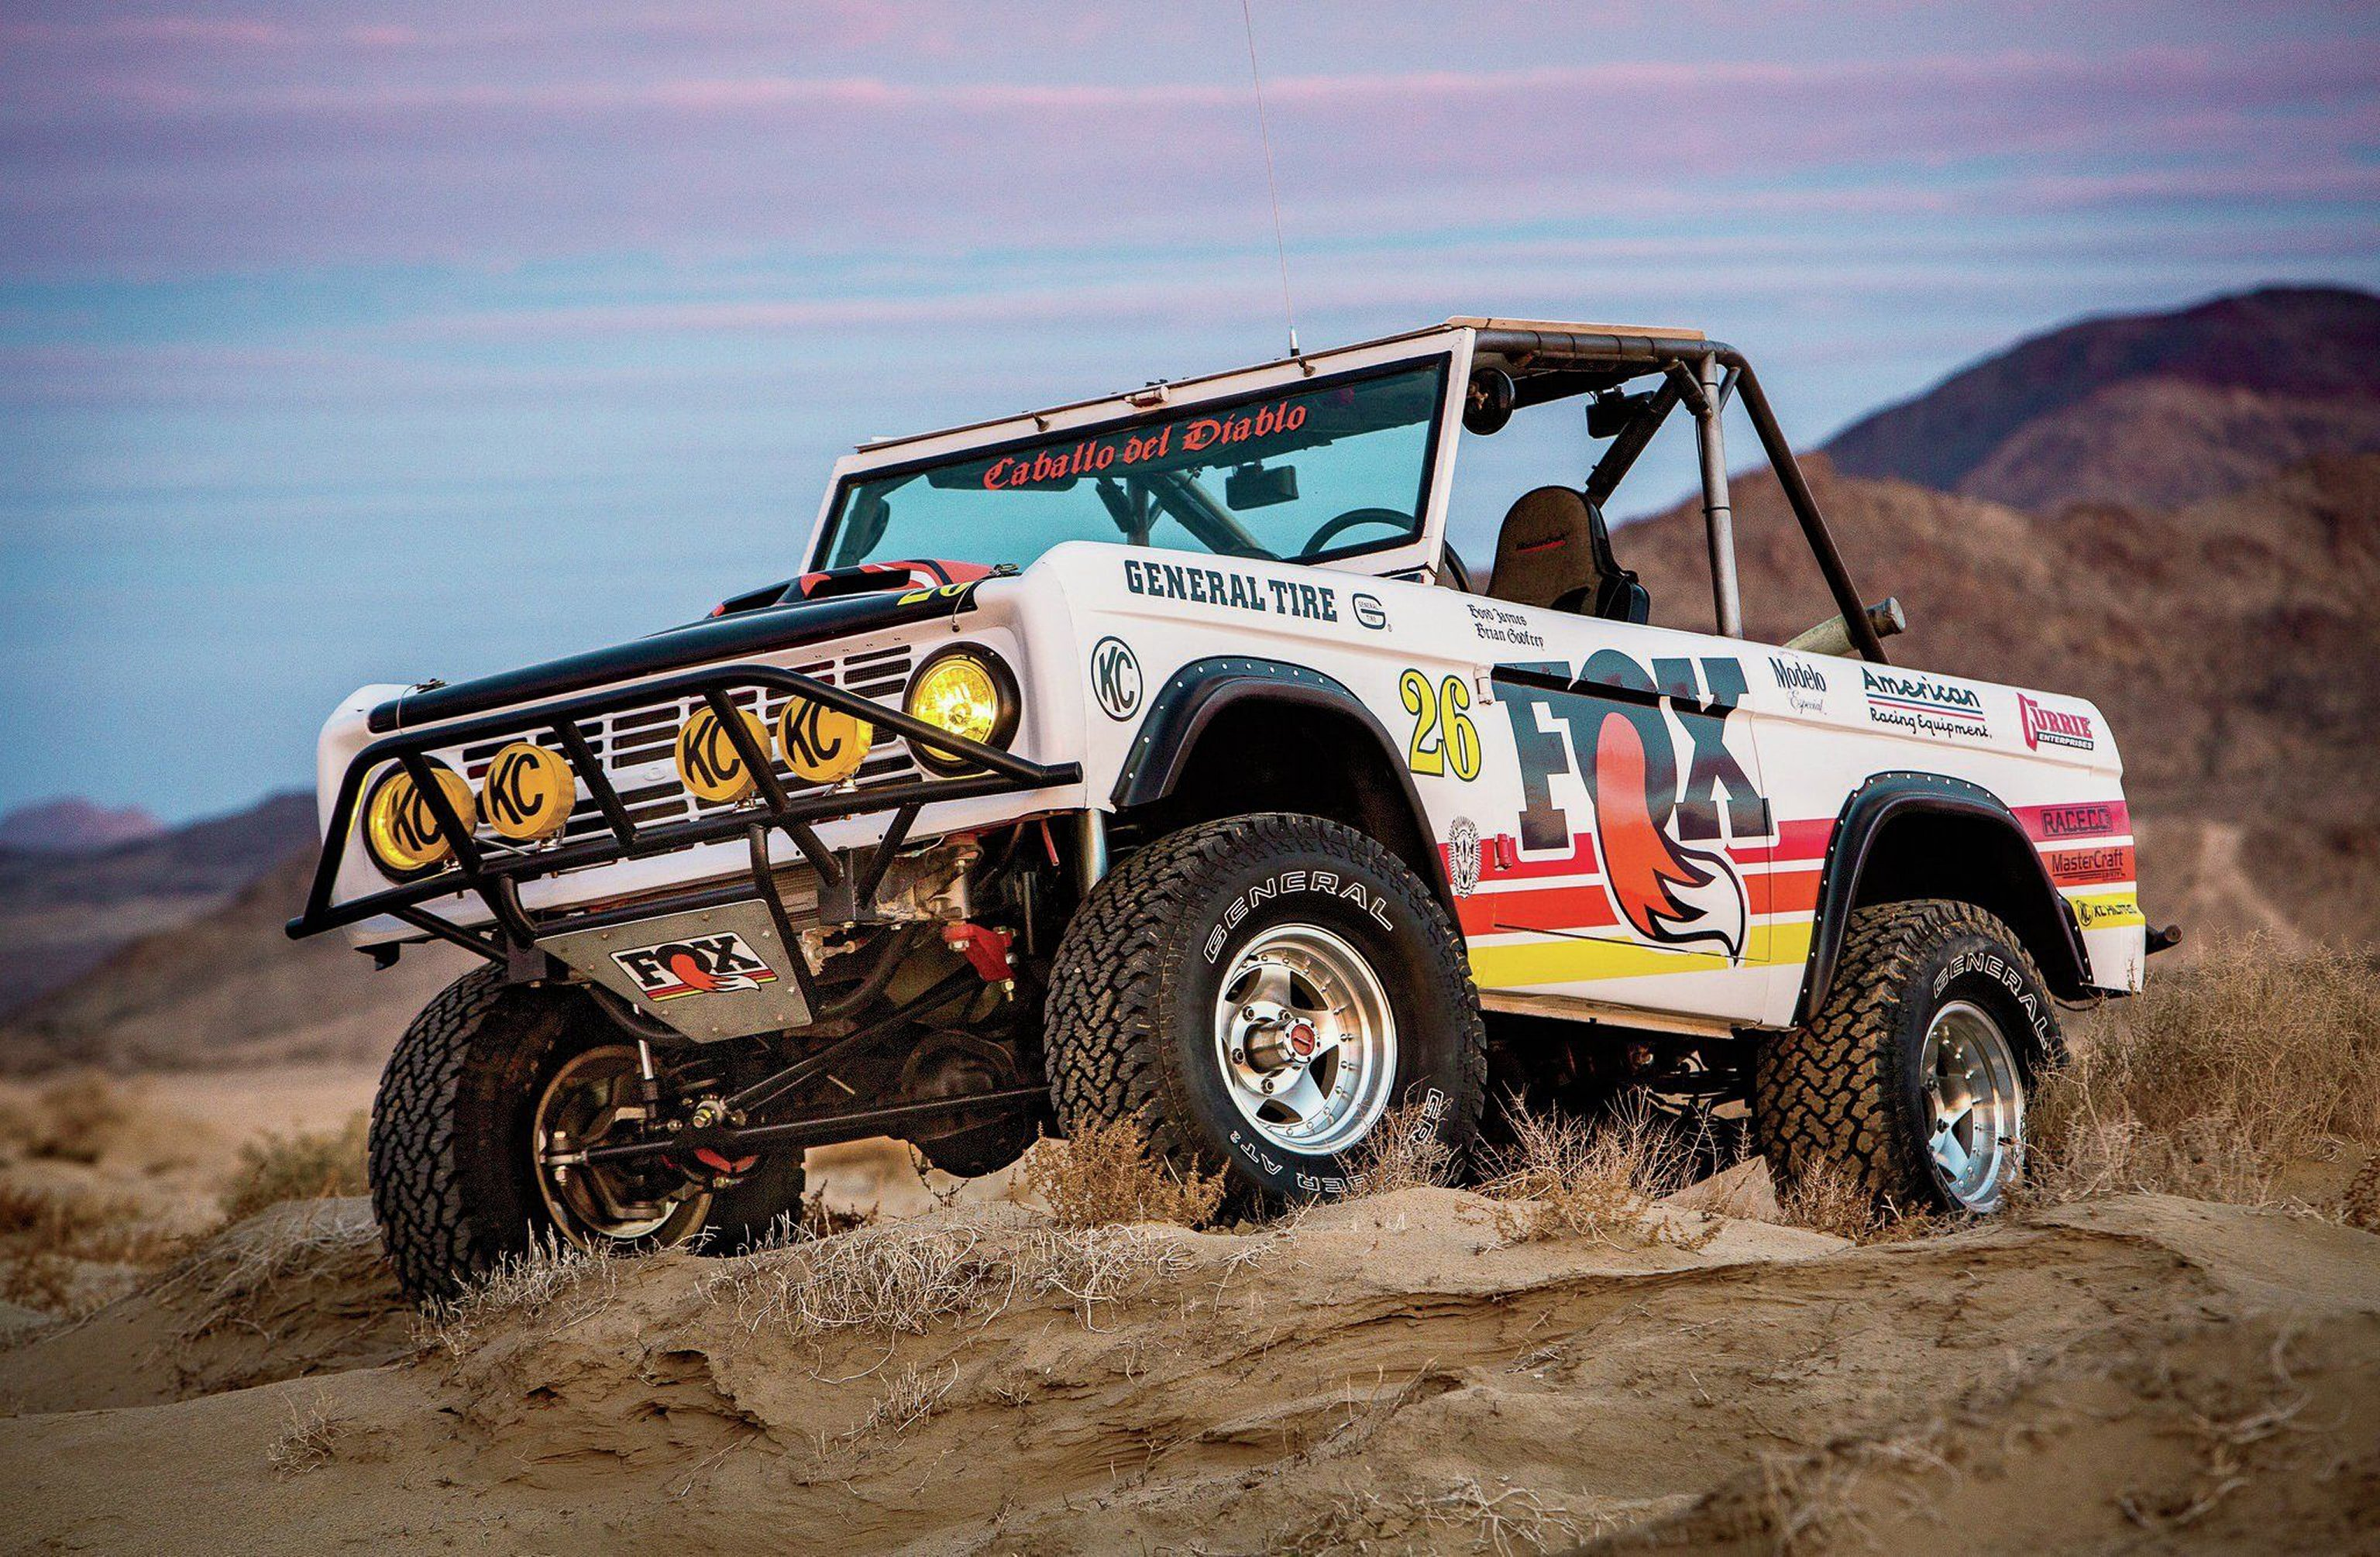 1968 Ford Bronco Off Road Race Car USA 3072x2010-01 ...